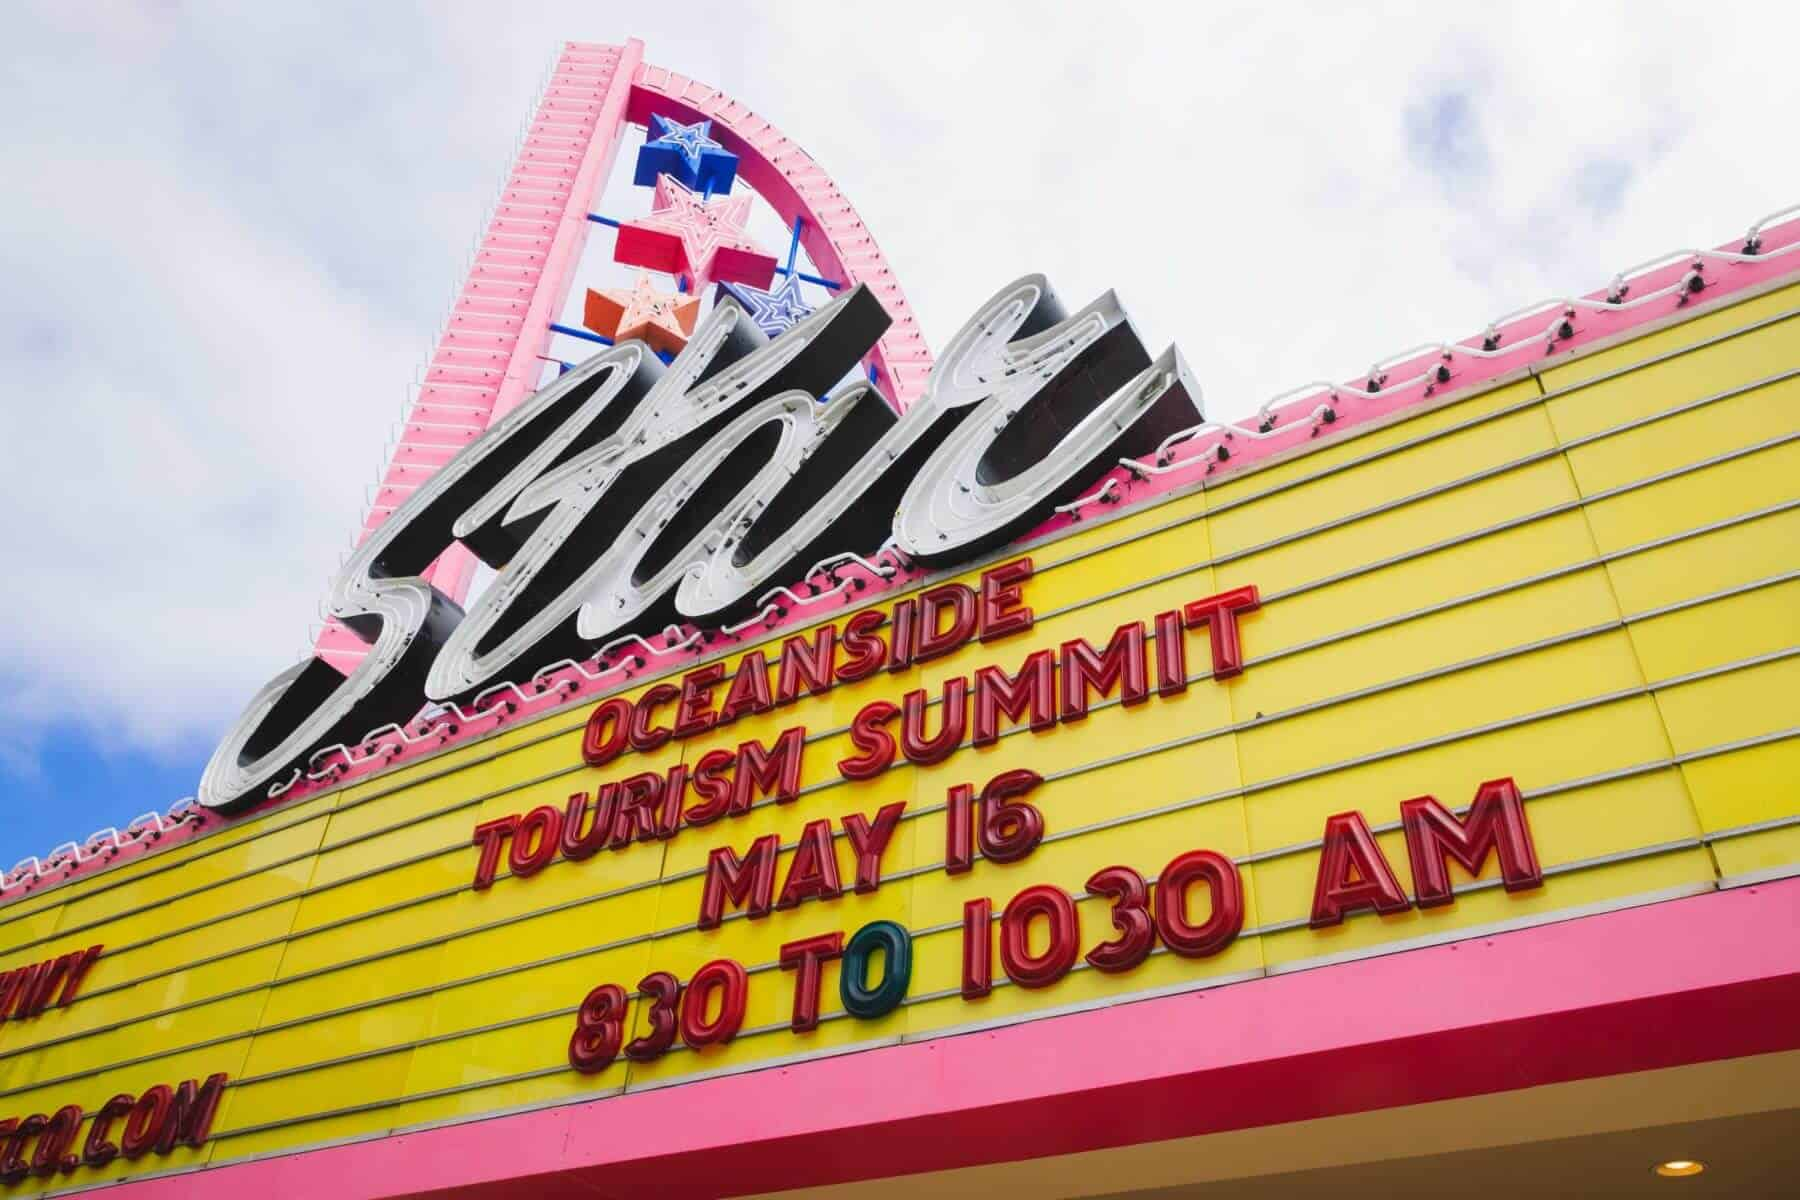 Star Theatre - Tourism Summit 2018 Location